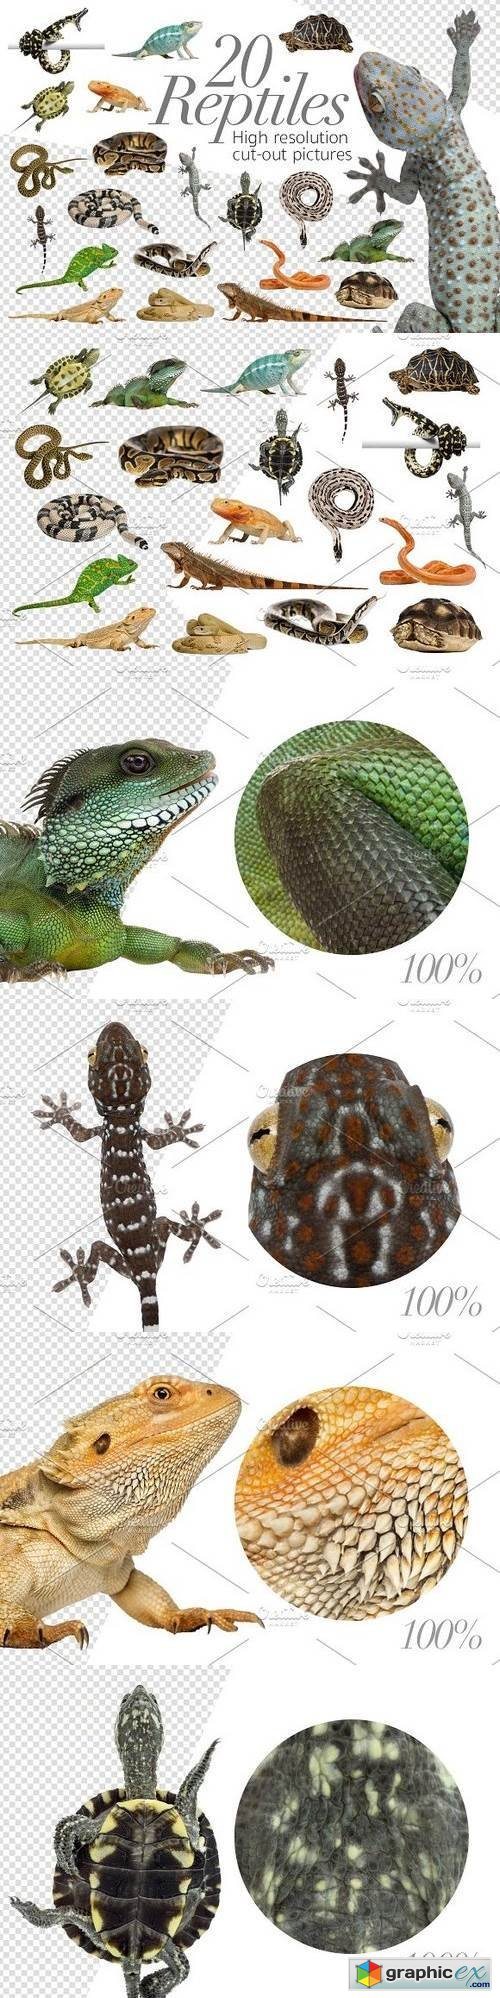 20 Reptiles - Cut-out Pictures